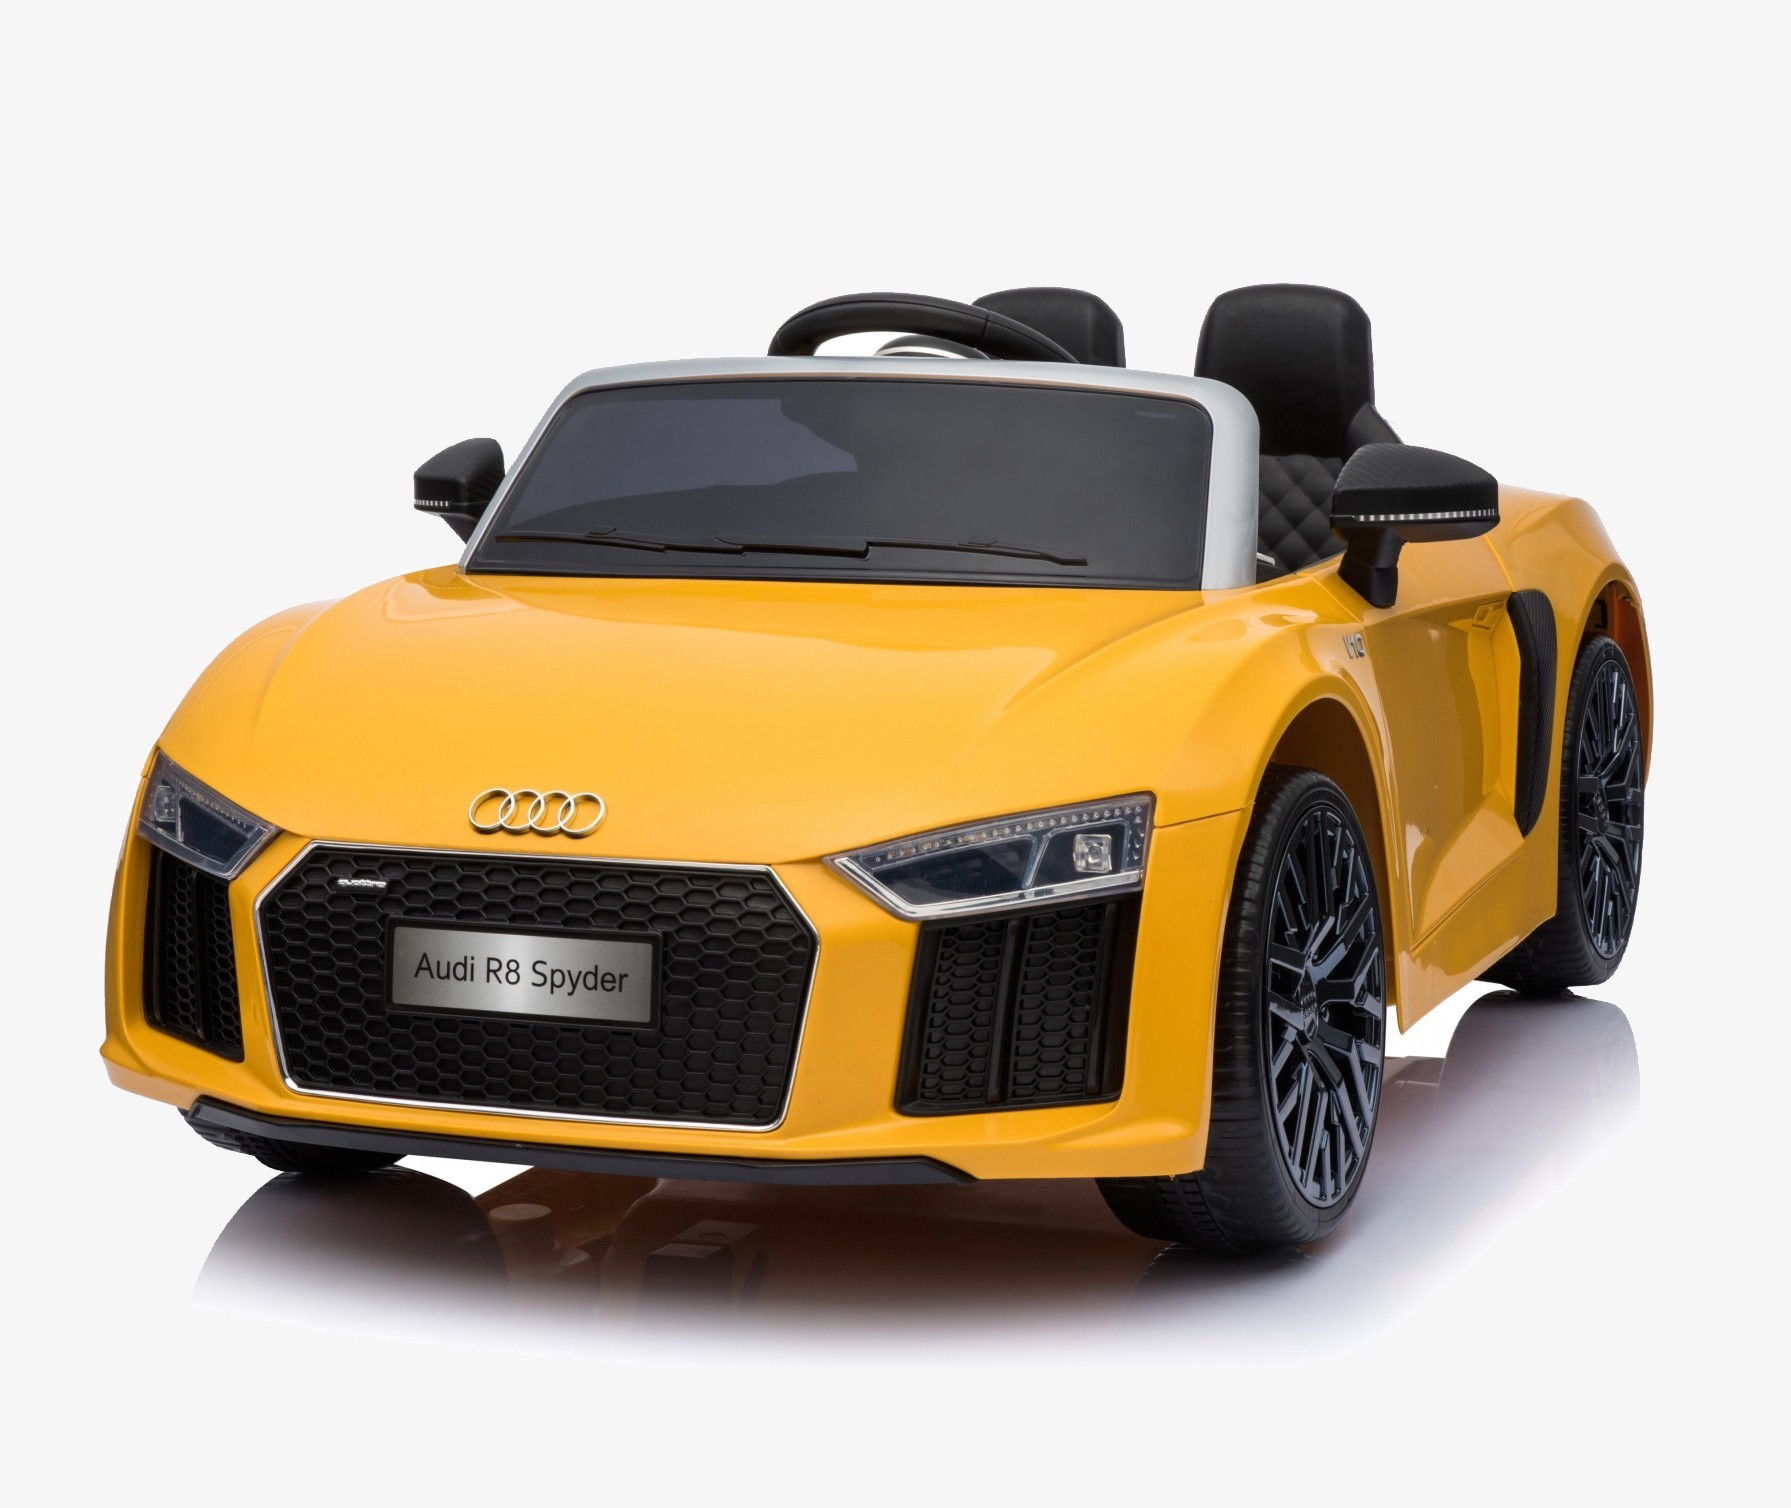 Xtreme 12v Official Licensed Audi R8 Spyder Ride on Car Yellow Double Headrest